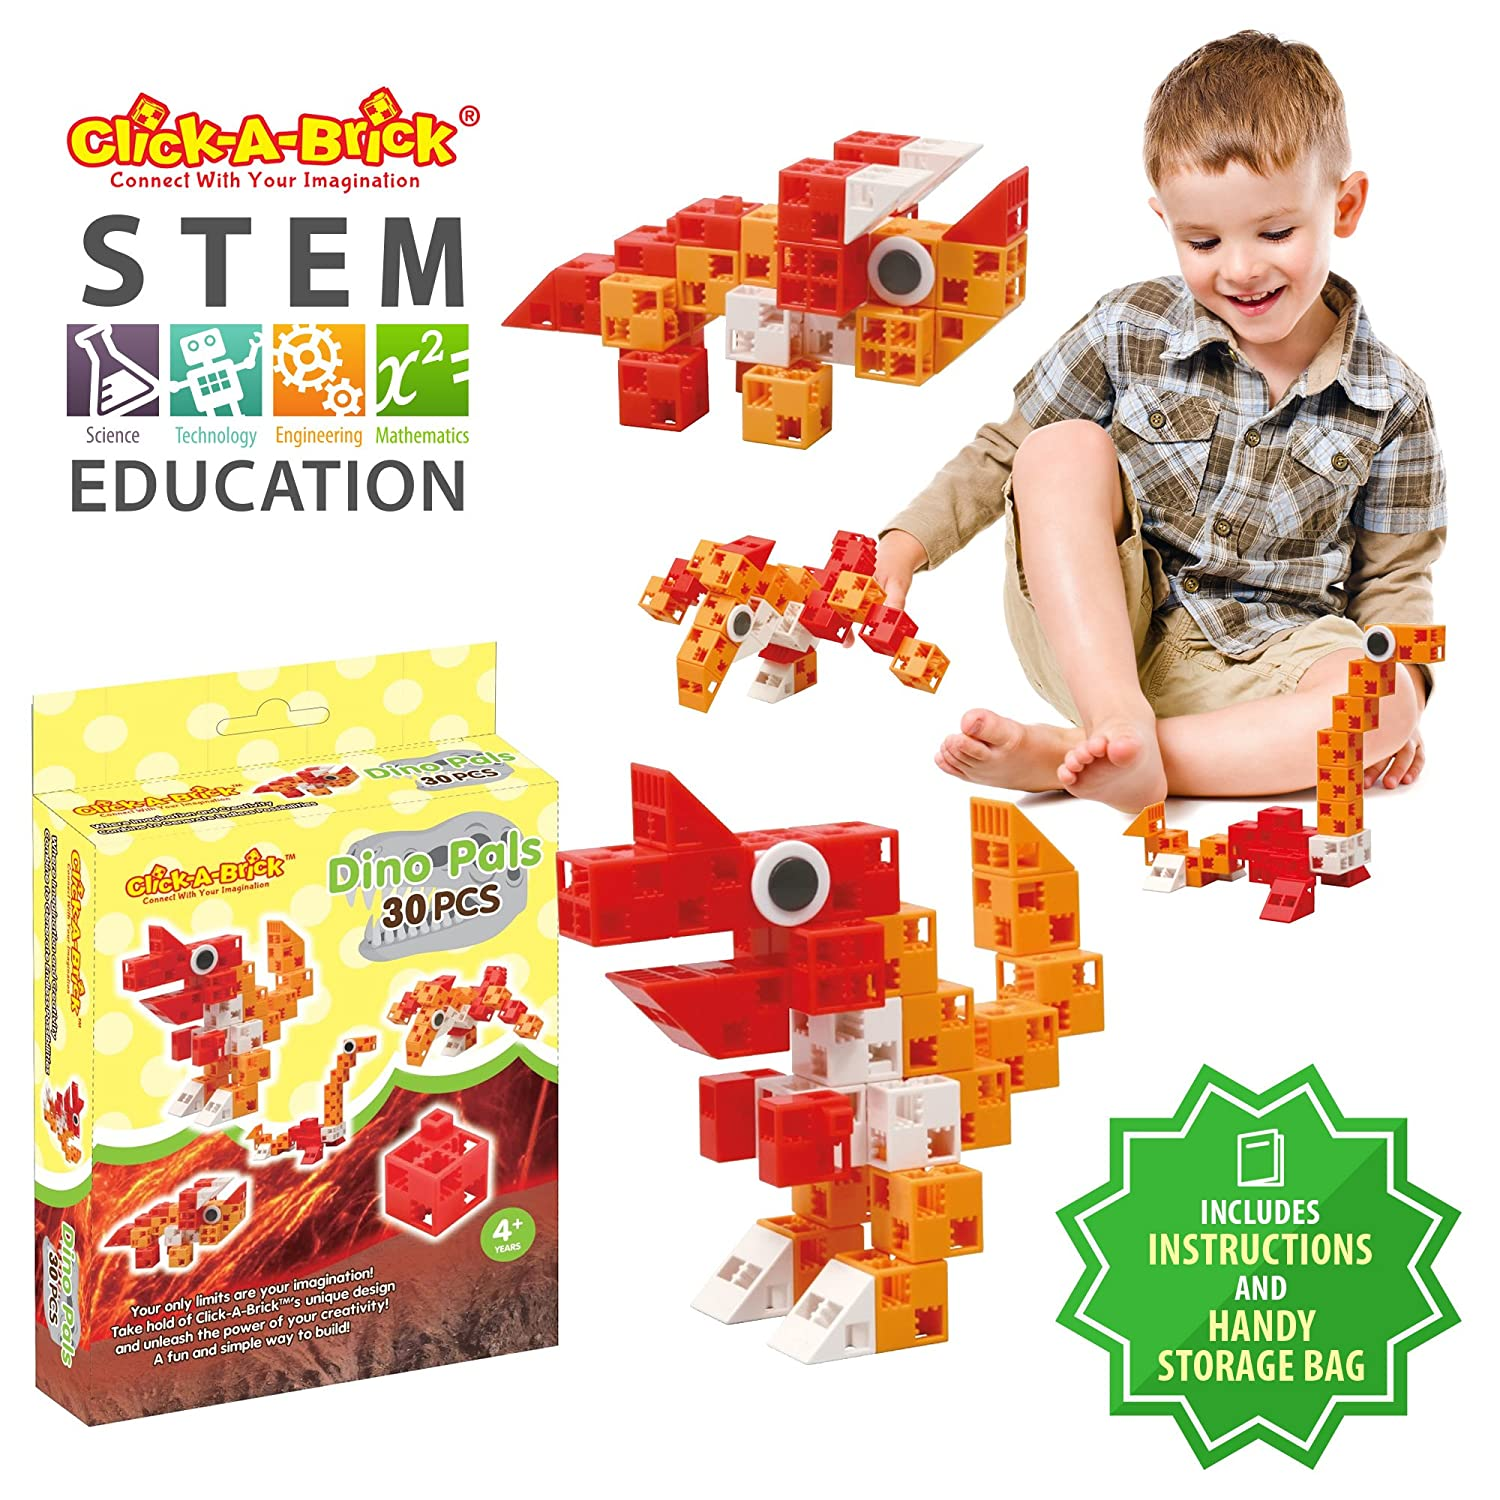 Click-A-Brick Dino Pals 30pc Building Blocks Set | Best STEM Toys for Boys & Girls Age 4 5 6 Year Old | Kids 3D Creative Puzzle Fun | Top Educational Learning Gift For Children Ages 4 - 12 Review